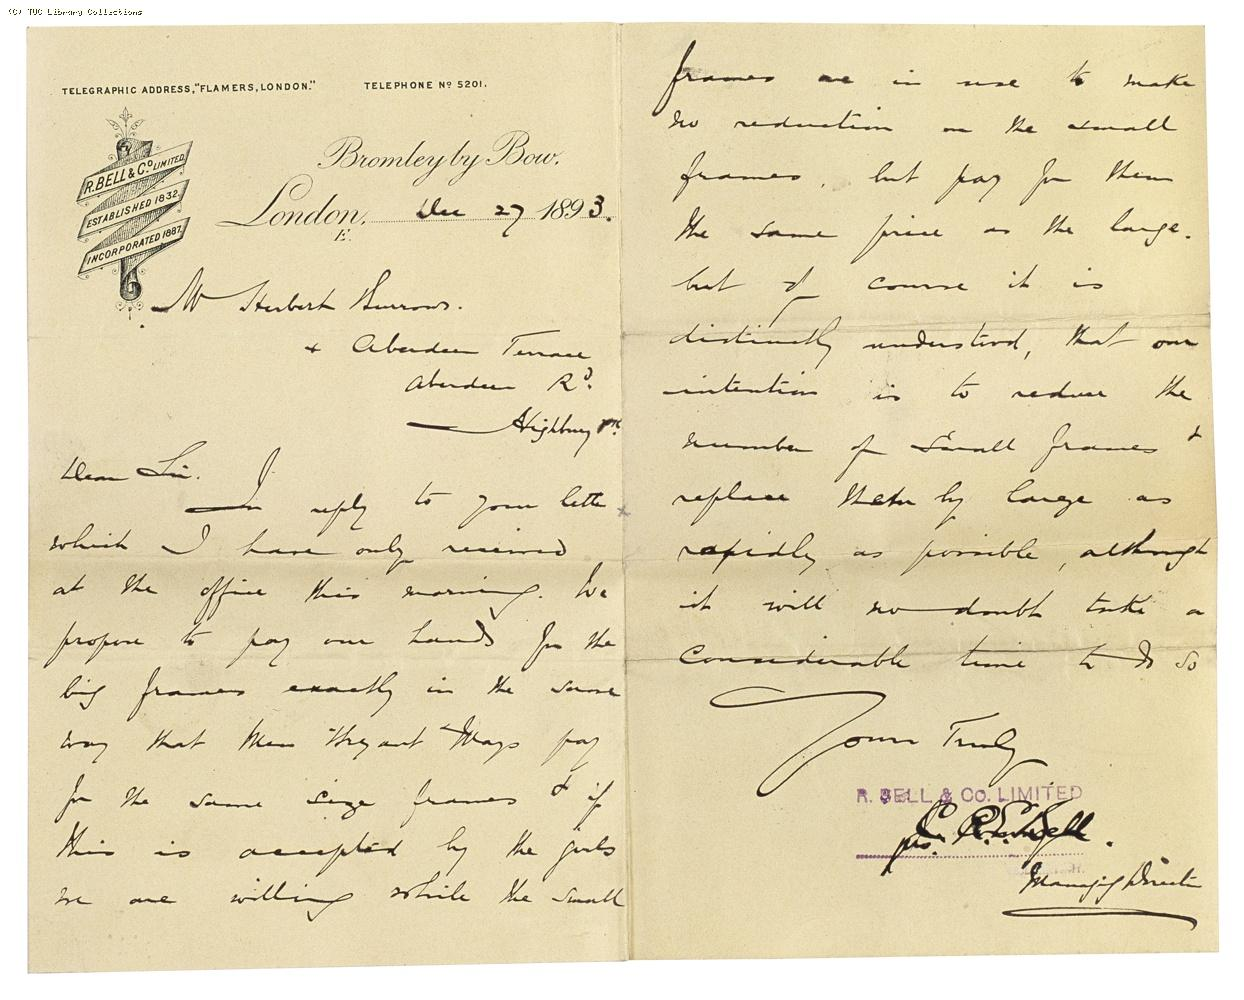 Letter from Charles Bell, Managing Director of Bell's, to Herbert Burrows, re: wage rates, 27 December 1893